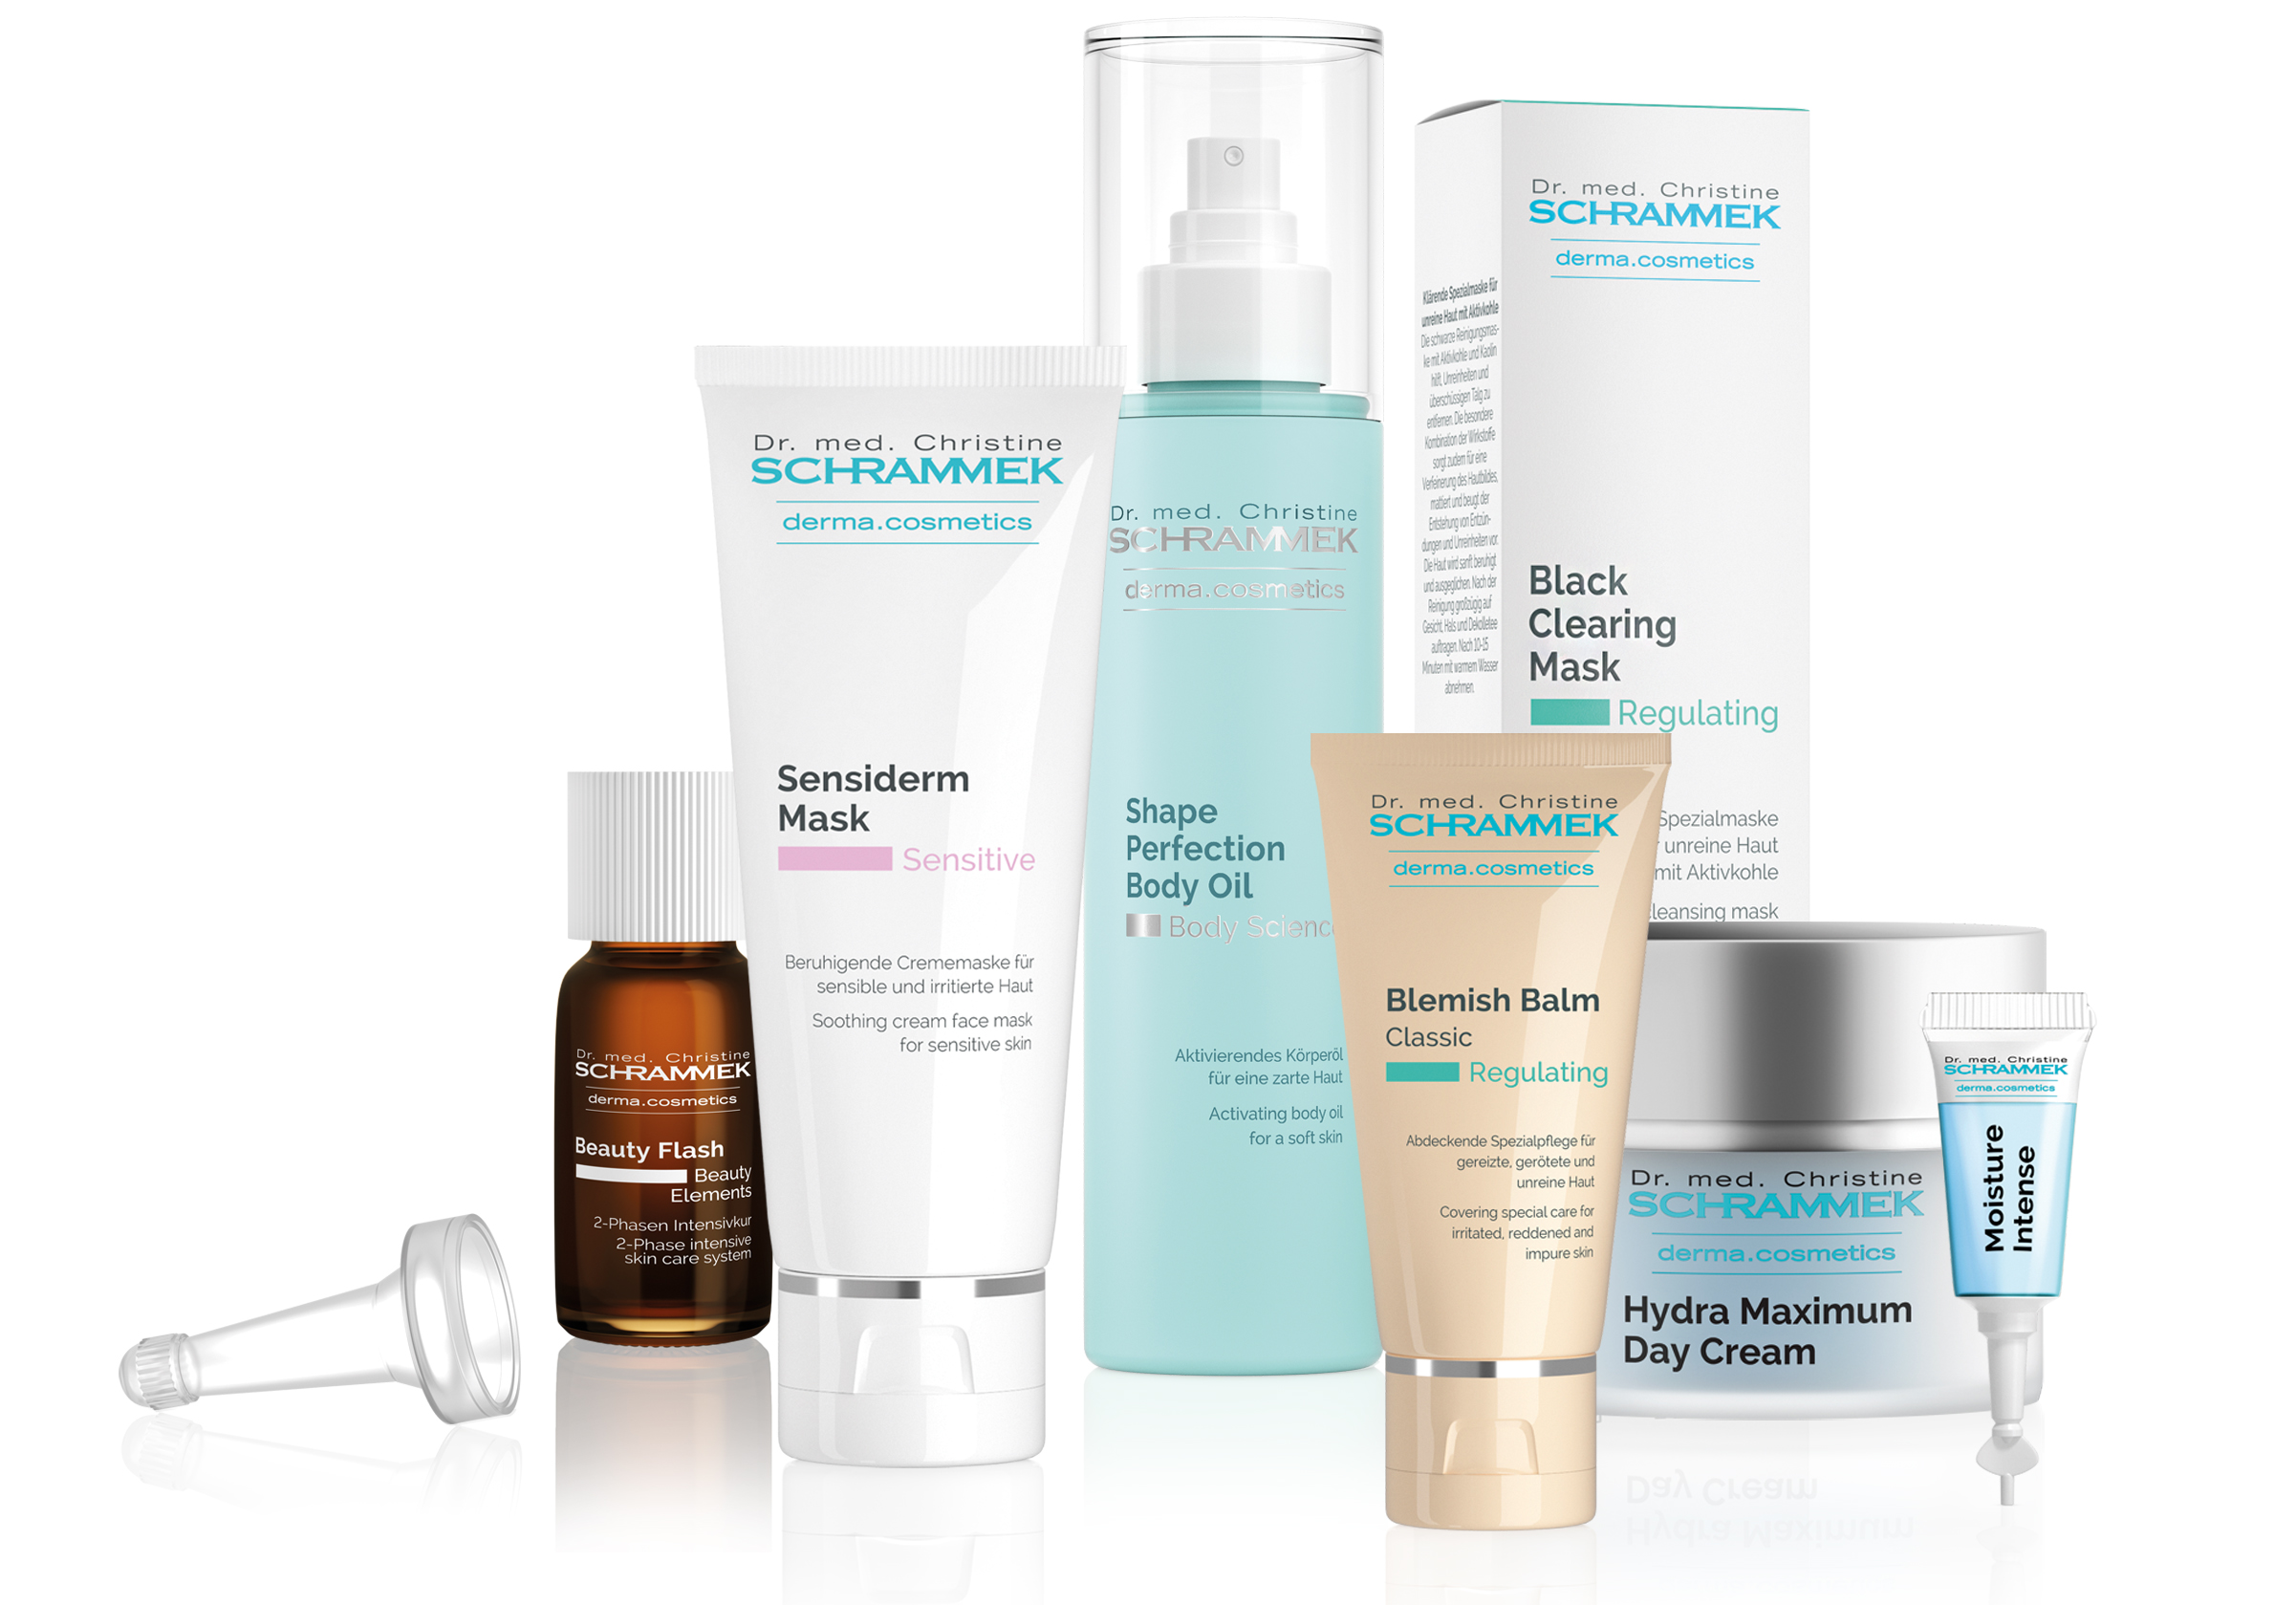 derma.cosmetics skin care products